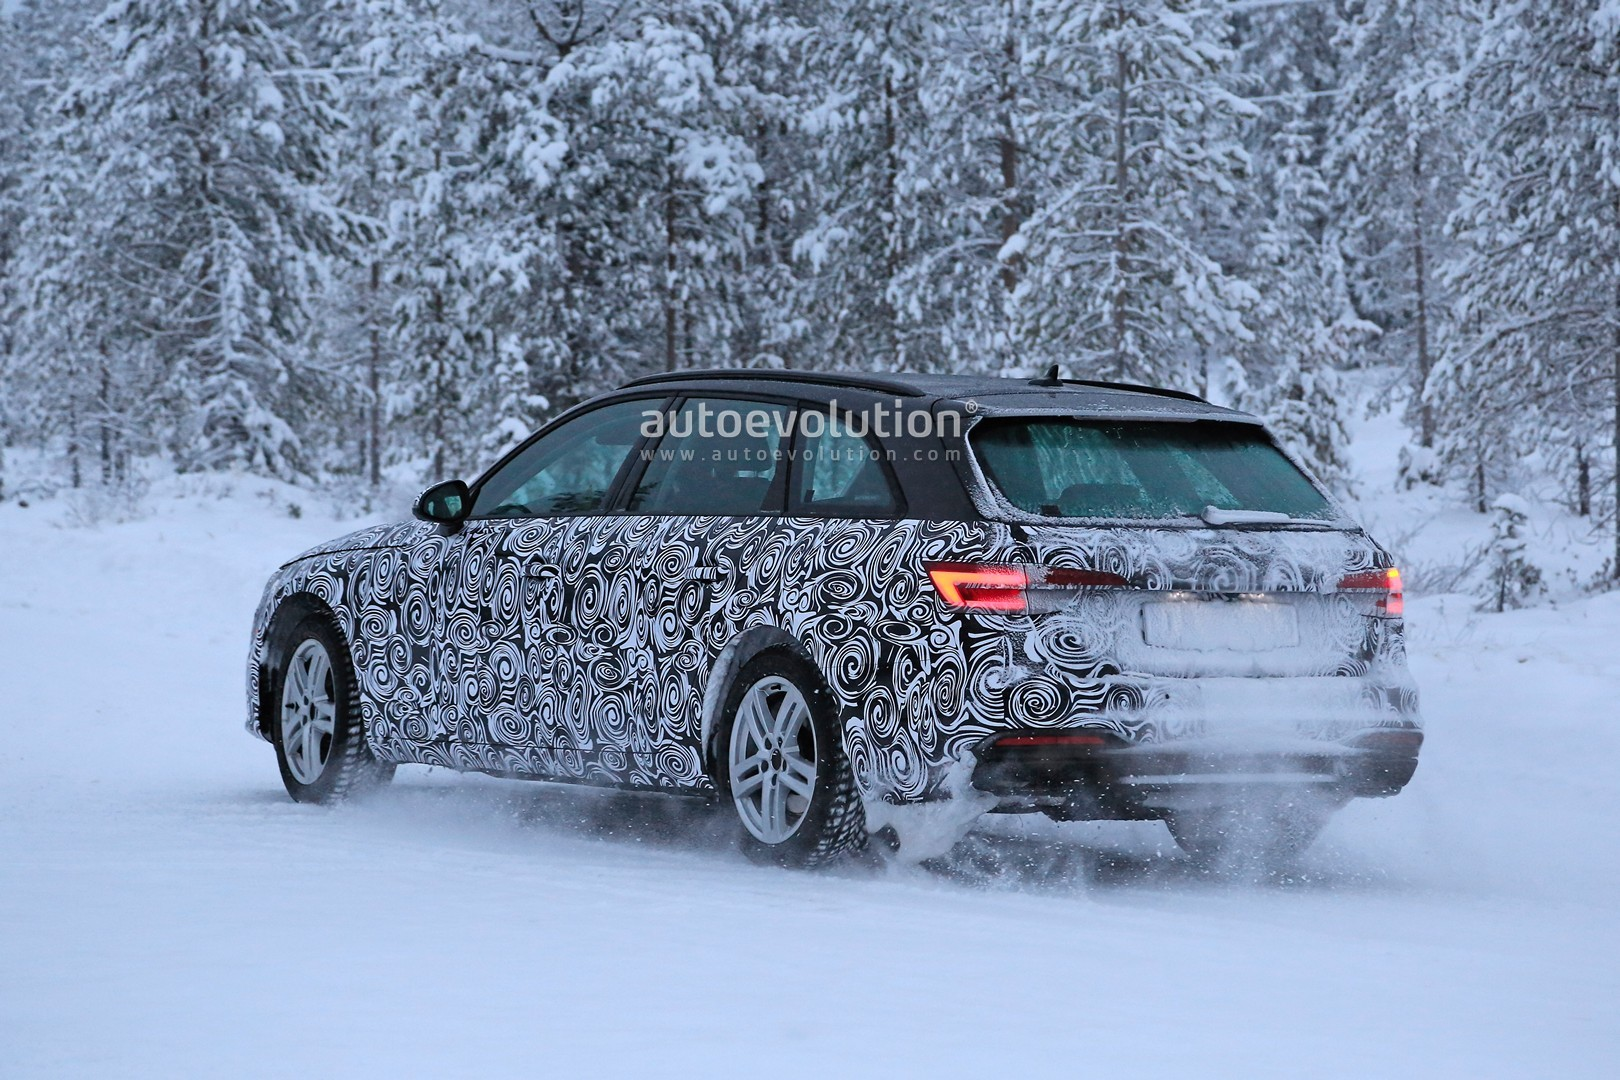 2020 audi a4 spied, getting new facelift worth half a